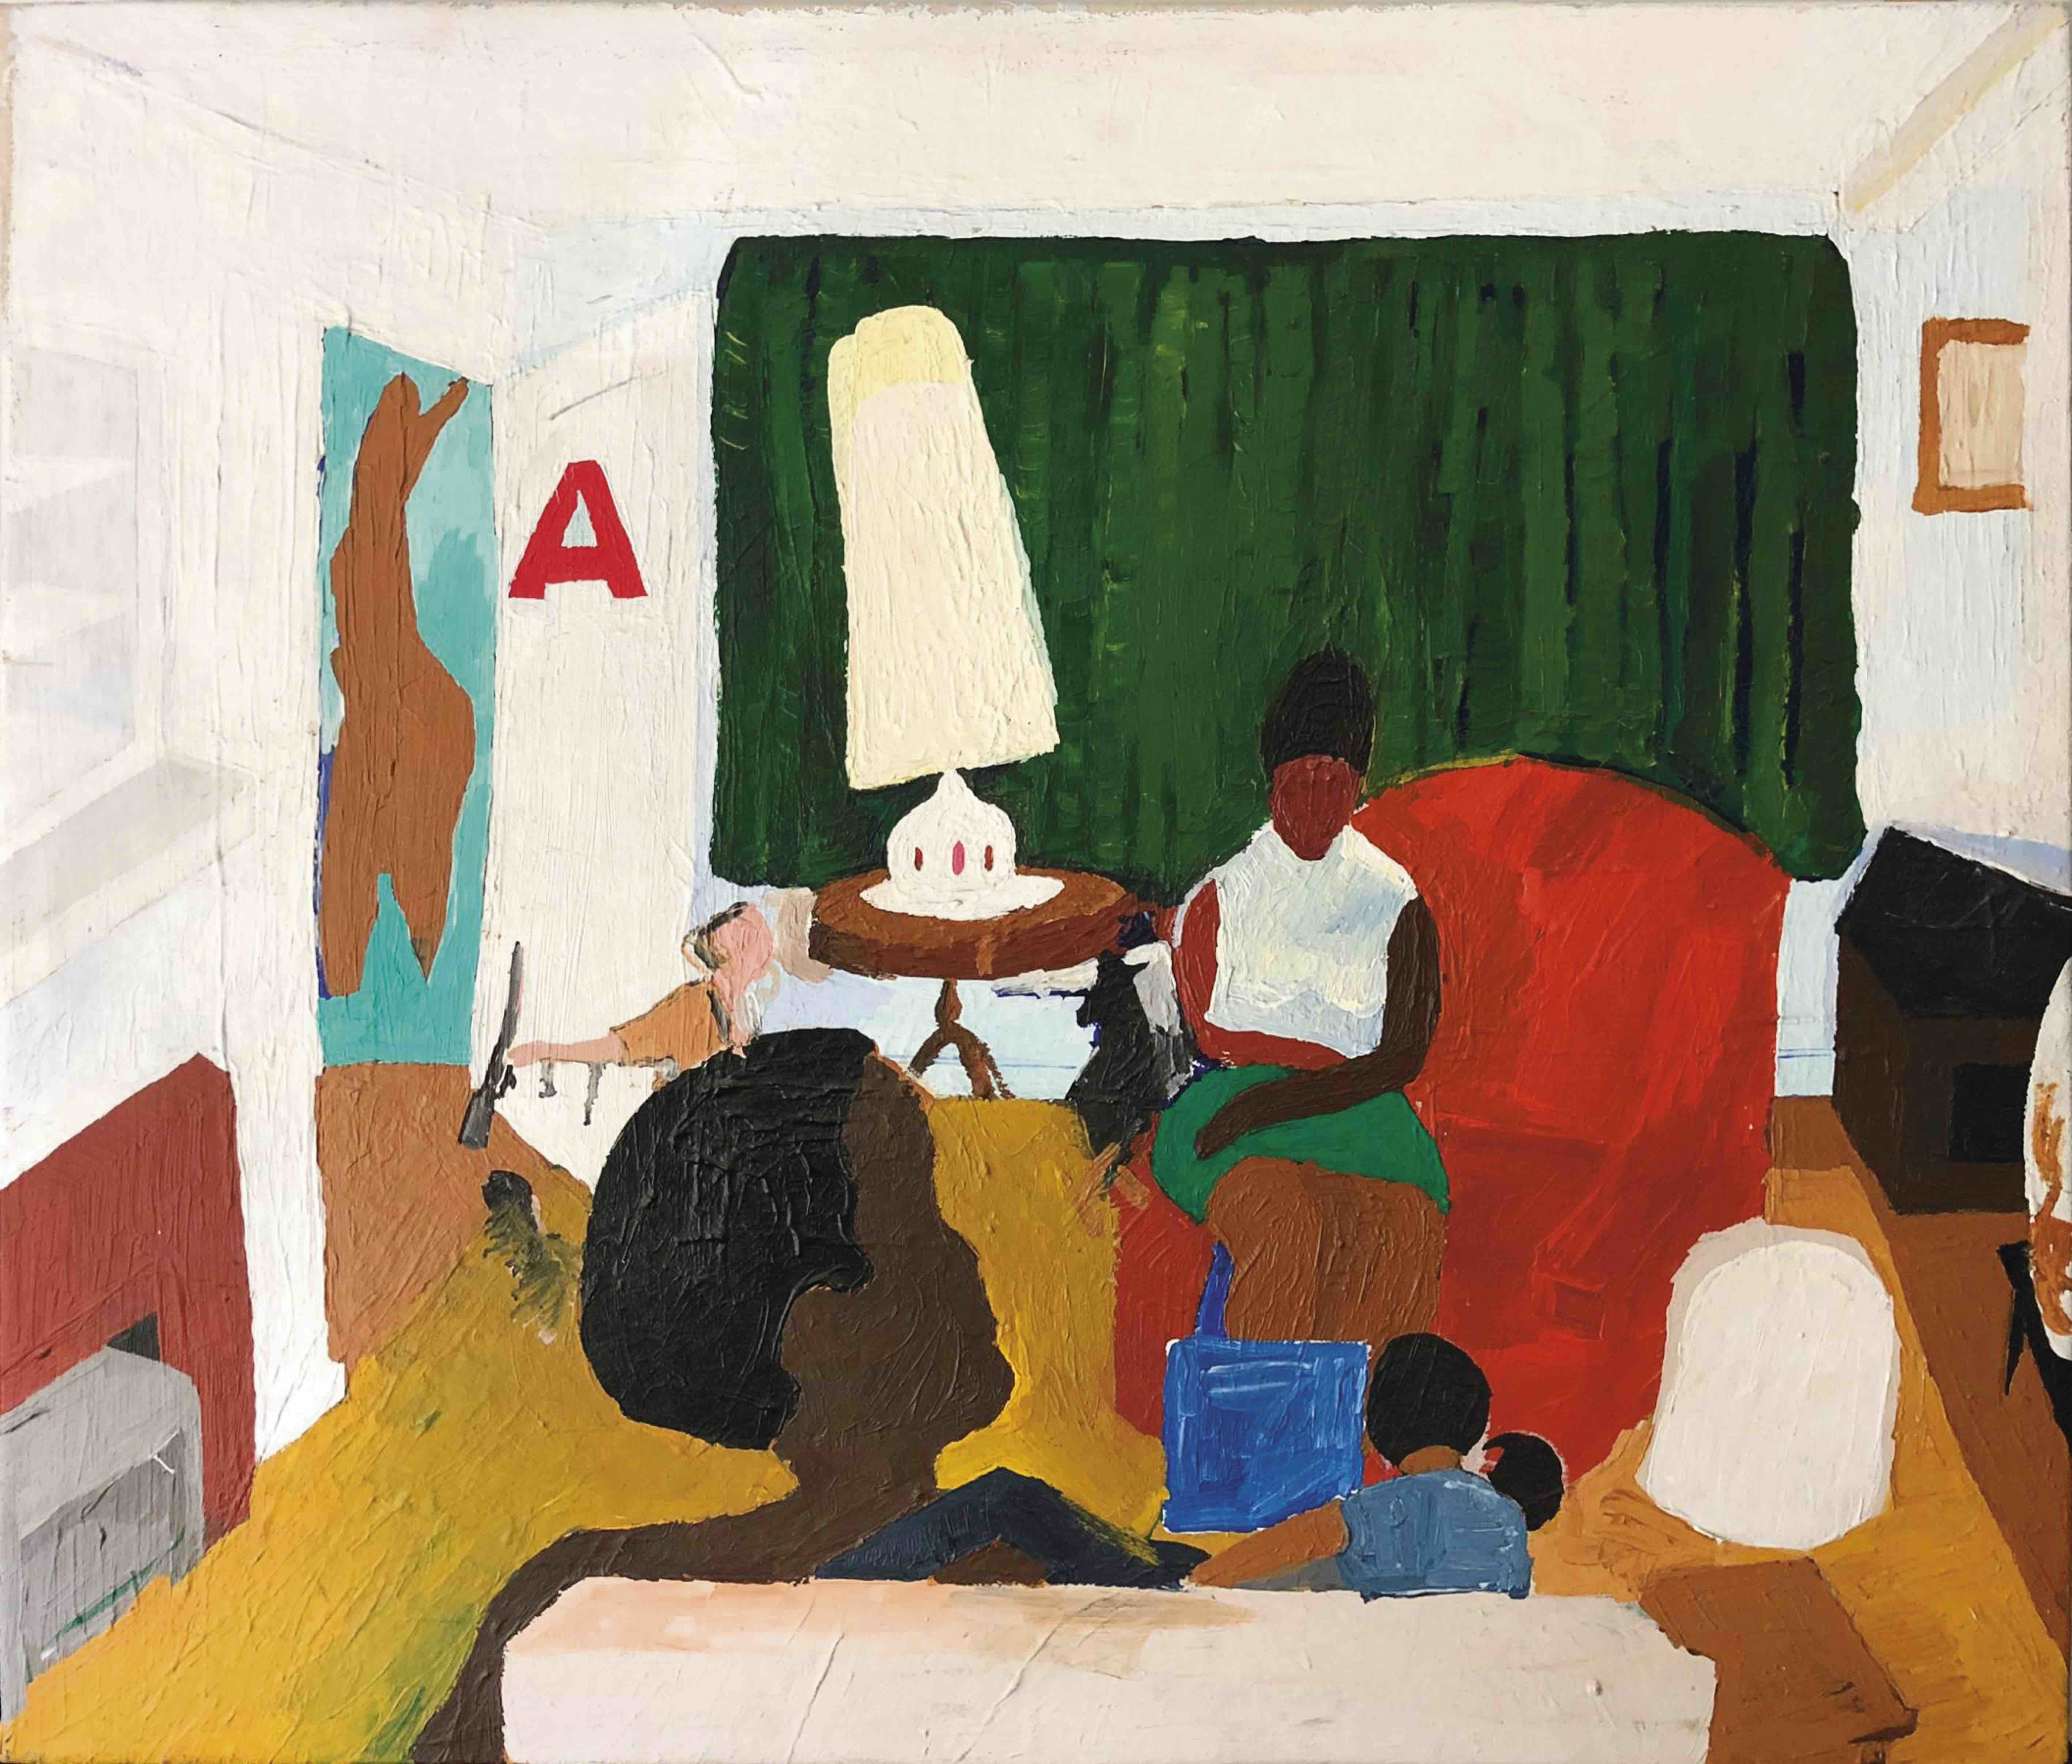 Henry Taylor Untitled (living room with Mama), 2004 Acrylic on canvas 67.3 x 77.5 cm (26.5 x 30.5 in) (HTA 1000) Private Collection © Henry Taylor